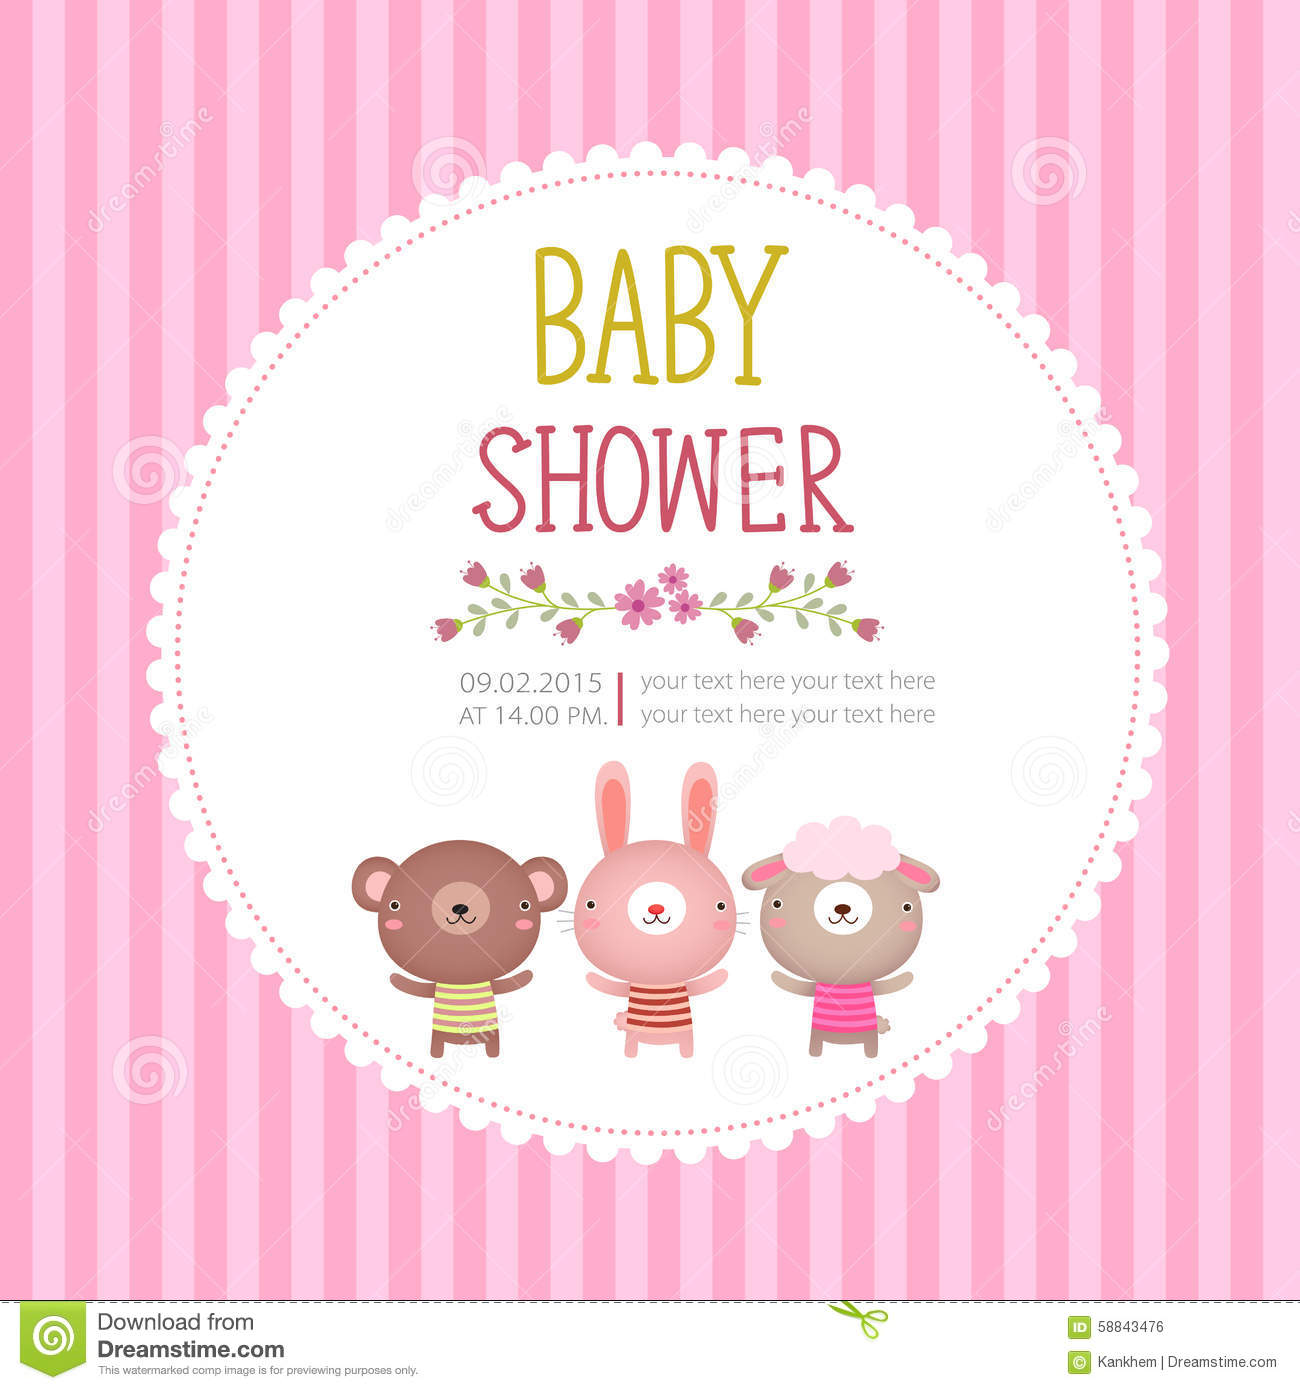 baby shower backgrounds for powerpoint